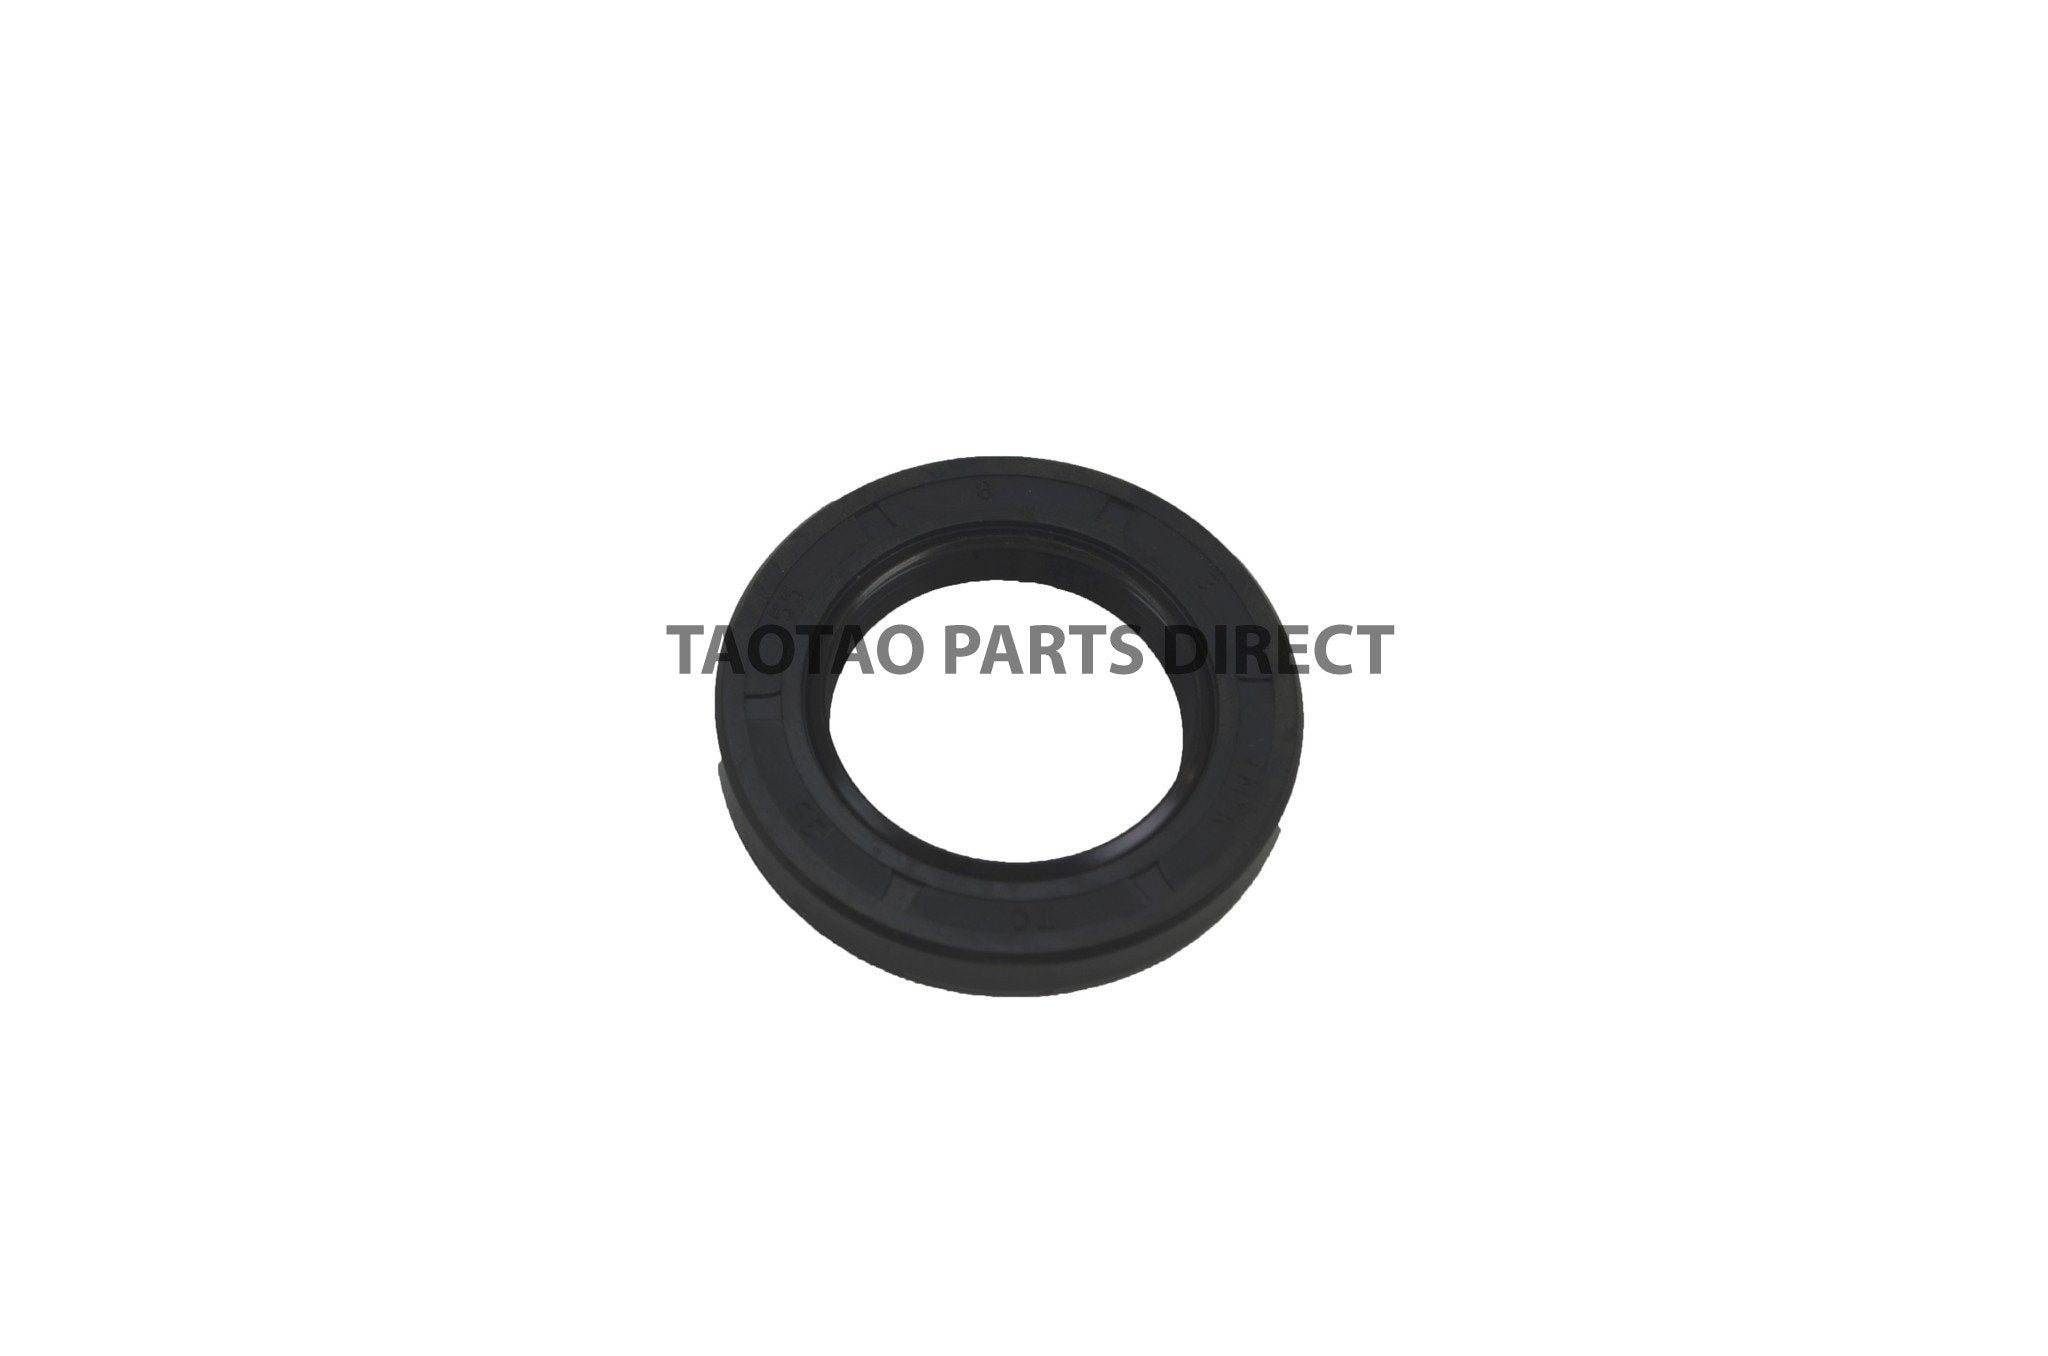 ATA250D Axle Bearing Seal - TaoTaoPartsDirect.com